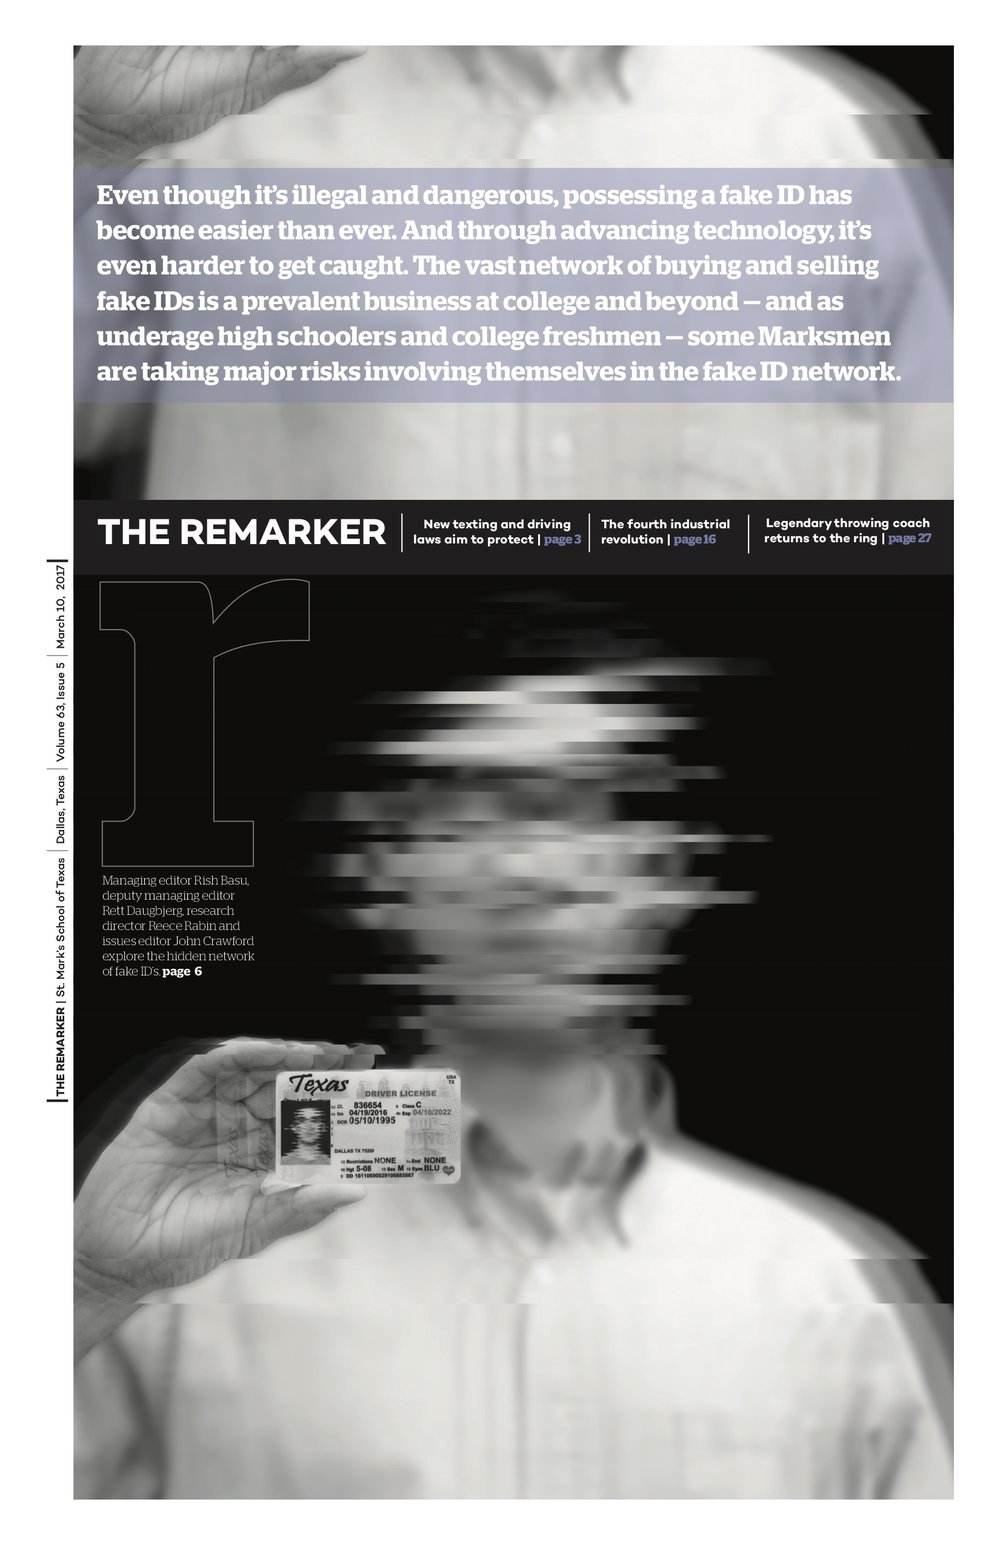 For a story on fake ID's, we used a glitched-out distortion theme to capture the level of confusion, criminality and secrecy commonly connected with the subject. The eye-catching misconstrued face and disjointed page introduced the topic in a compelling way for the community and sparked chatter across campus.